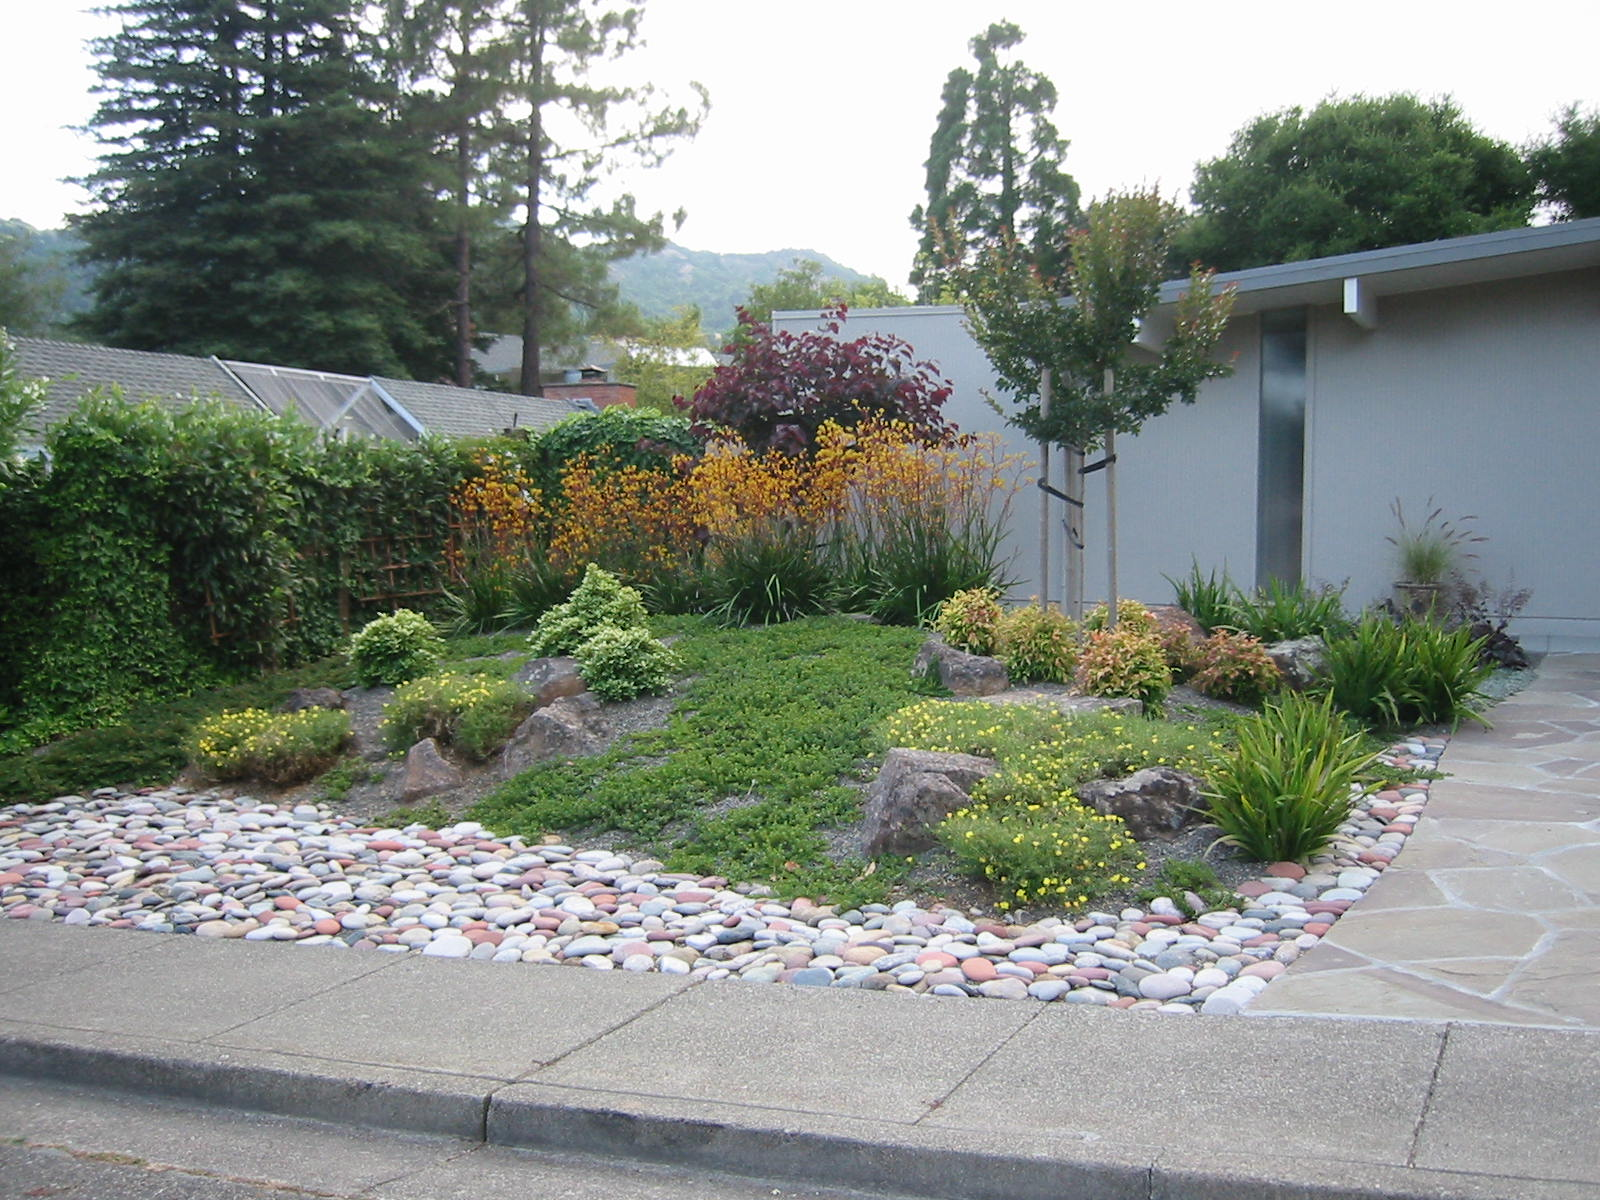 Ideas For A Slope Landscaping A Hillside With Boulders